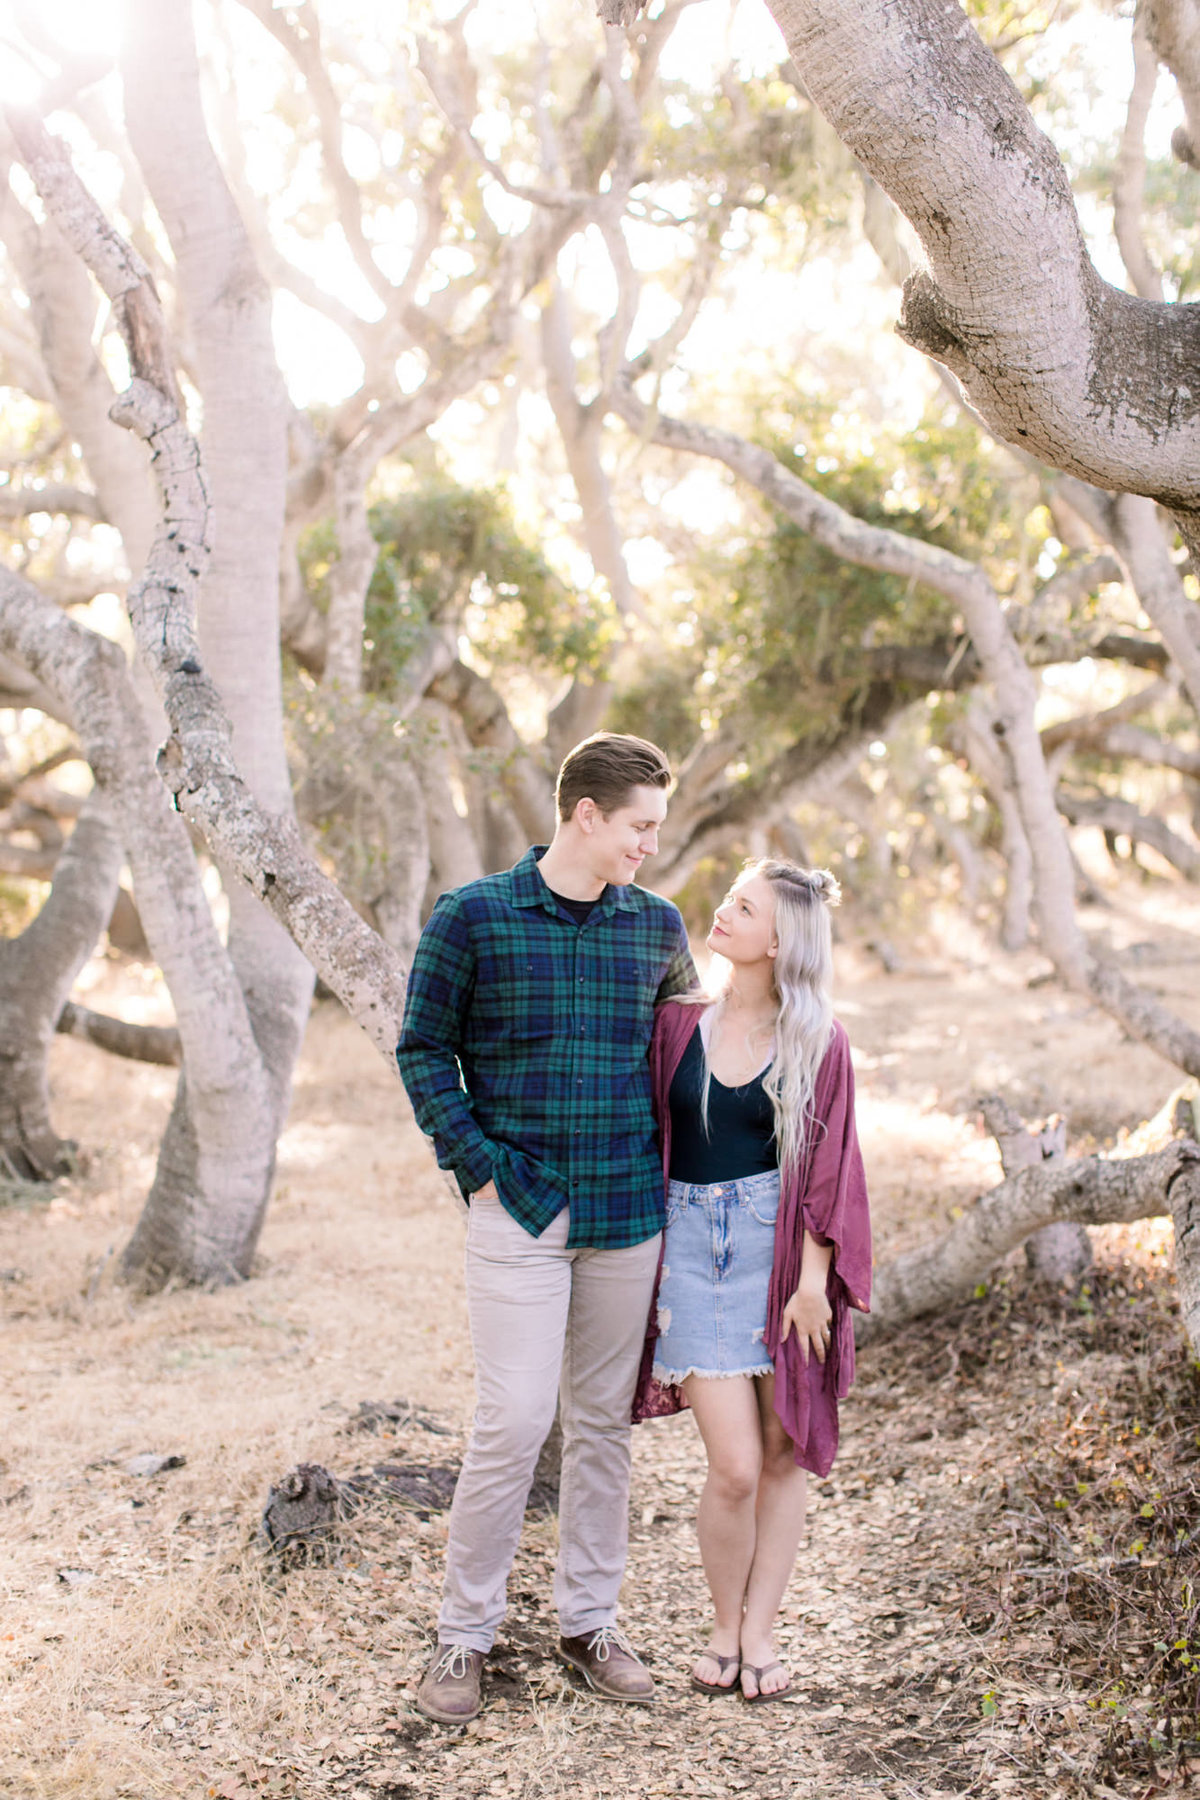 lynseyD-tayler-enerle-photography-engagement-perfumo-canyon-5